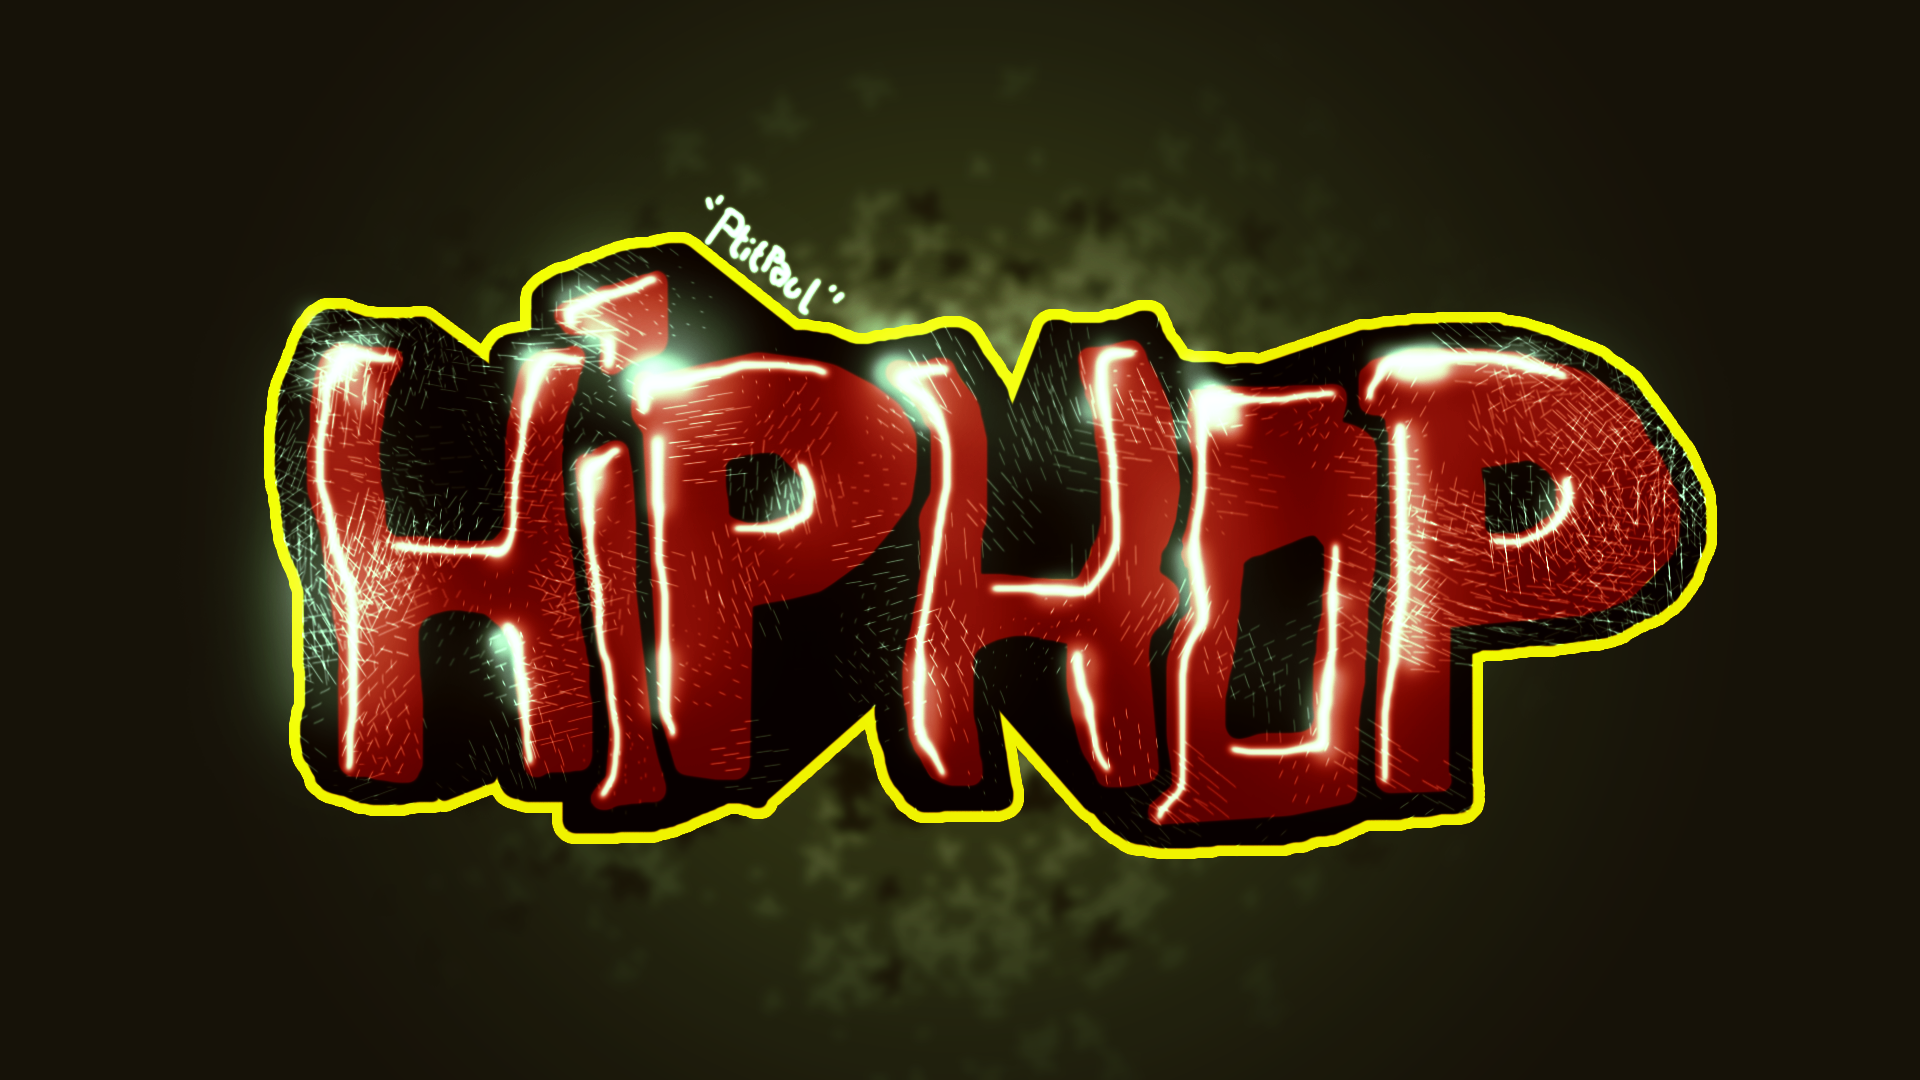 graffiti hip hop shop: